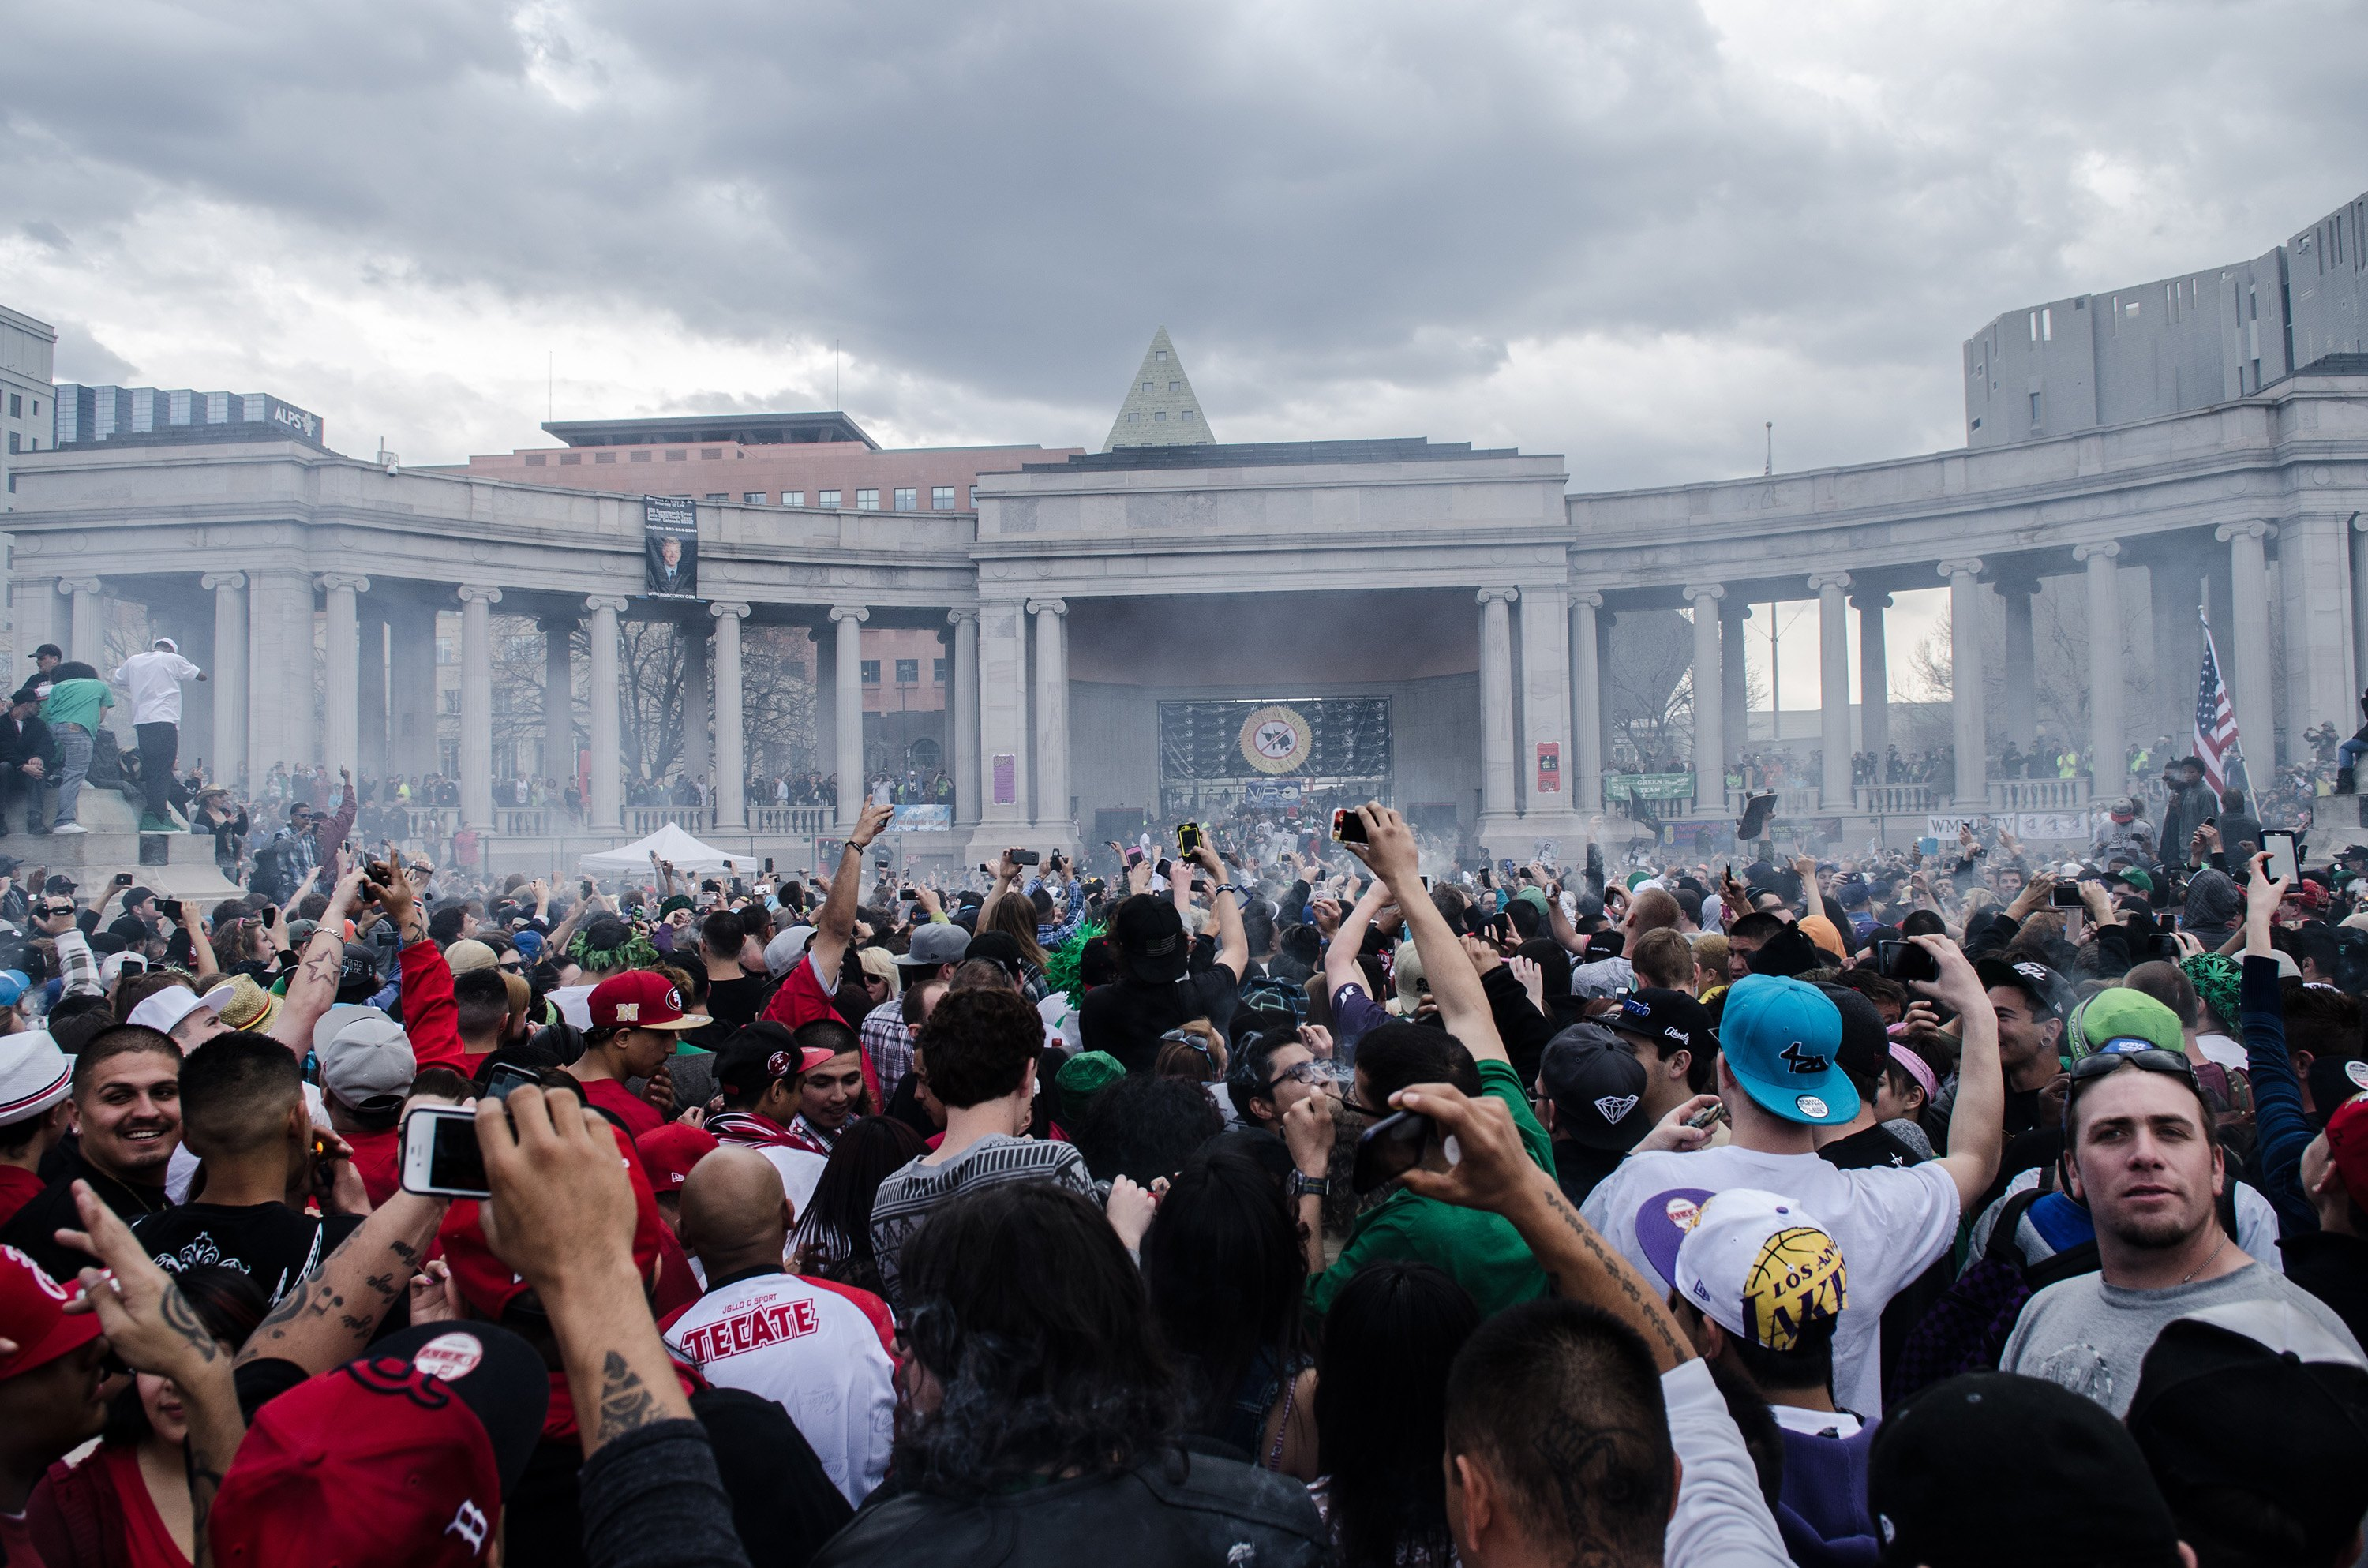 Crowd shot of the 420 celebration at the Civic Center in Denver, Colo. on April 20, 2013.